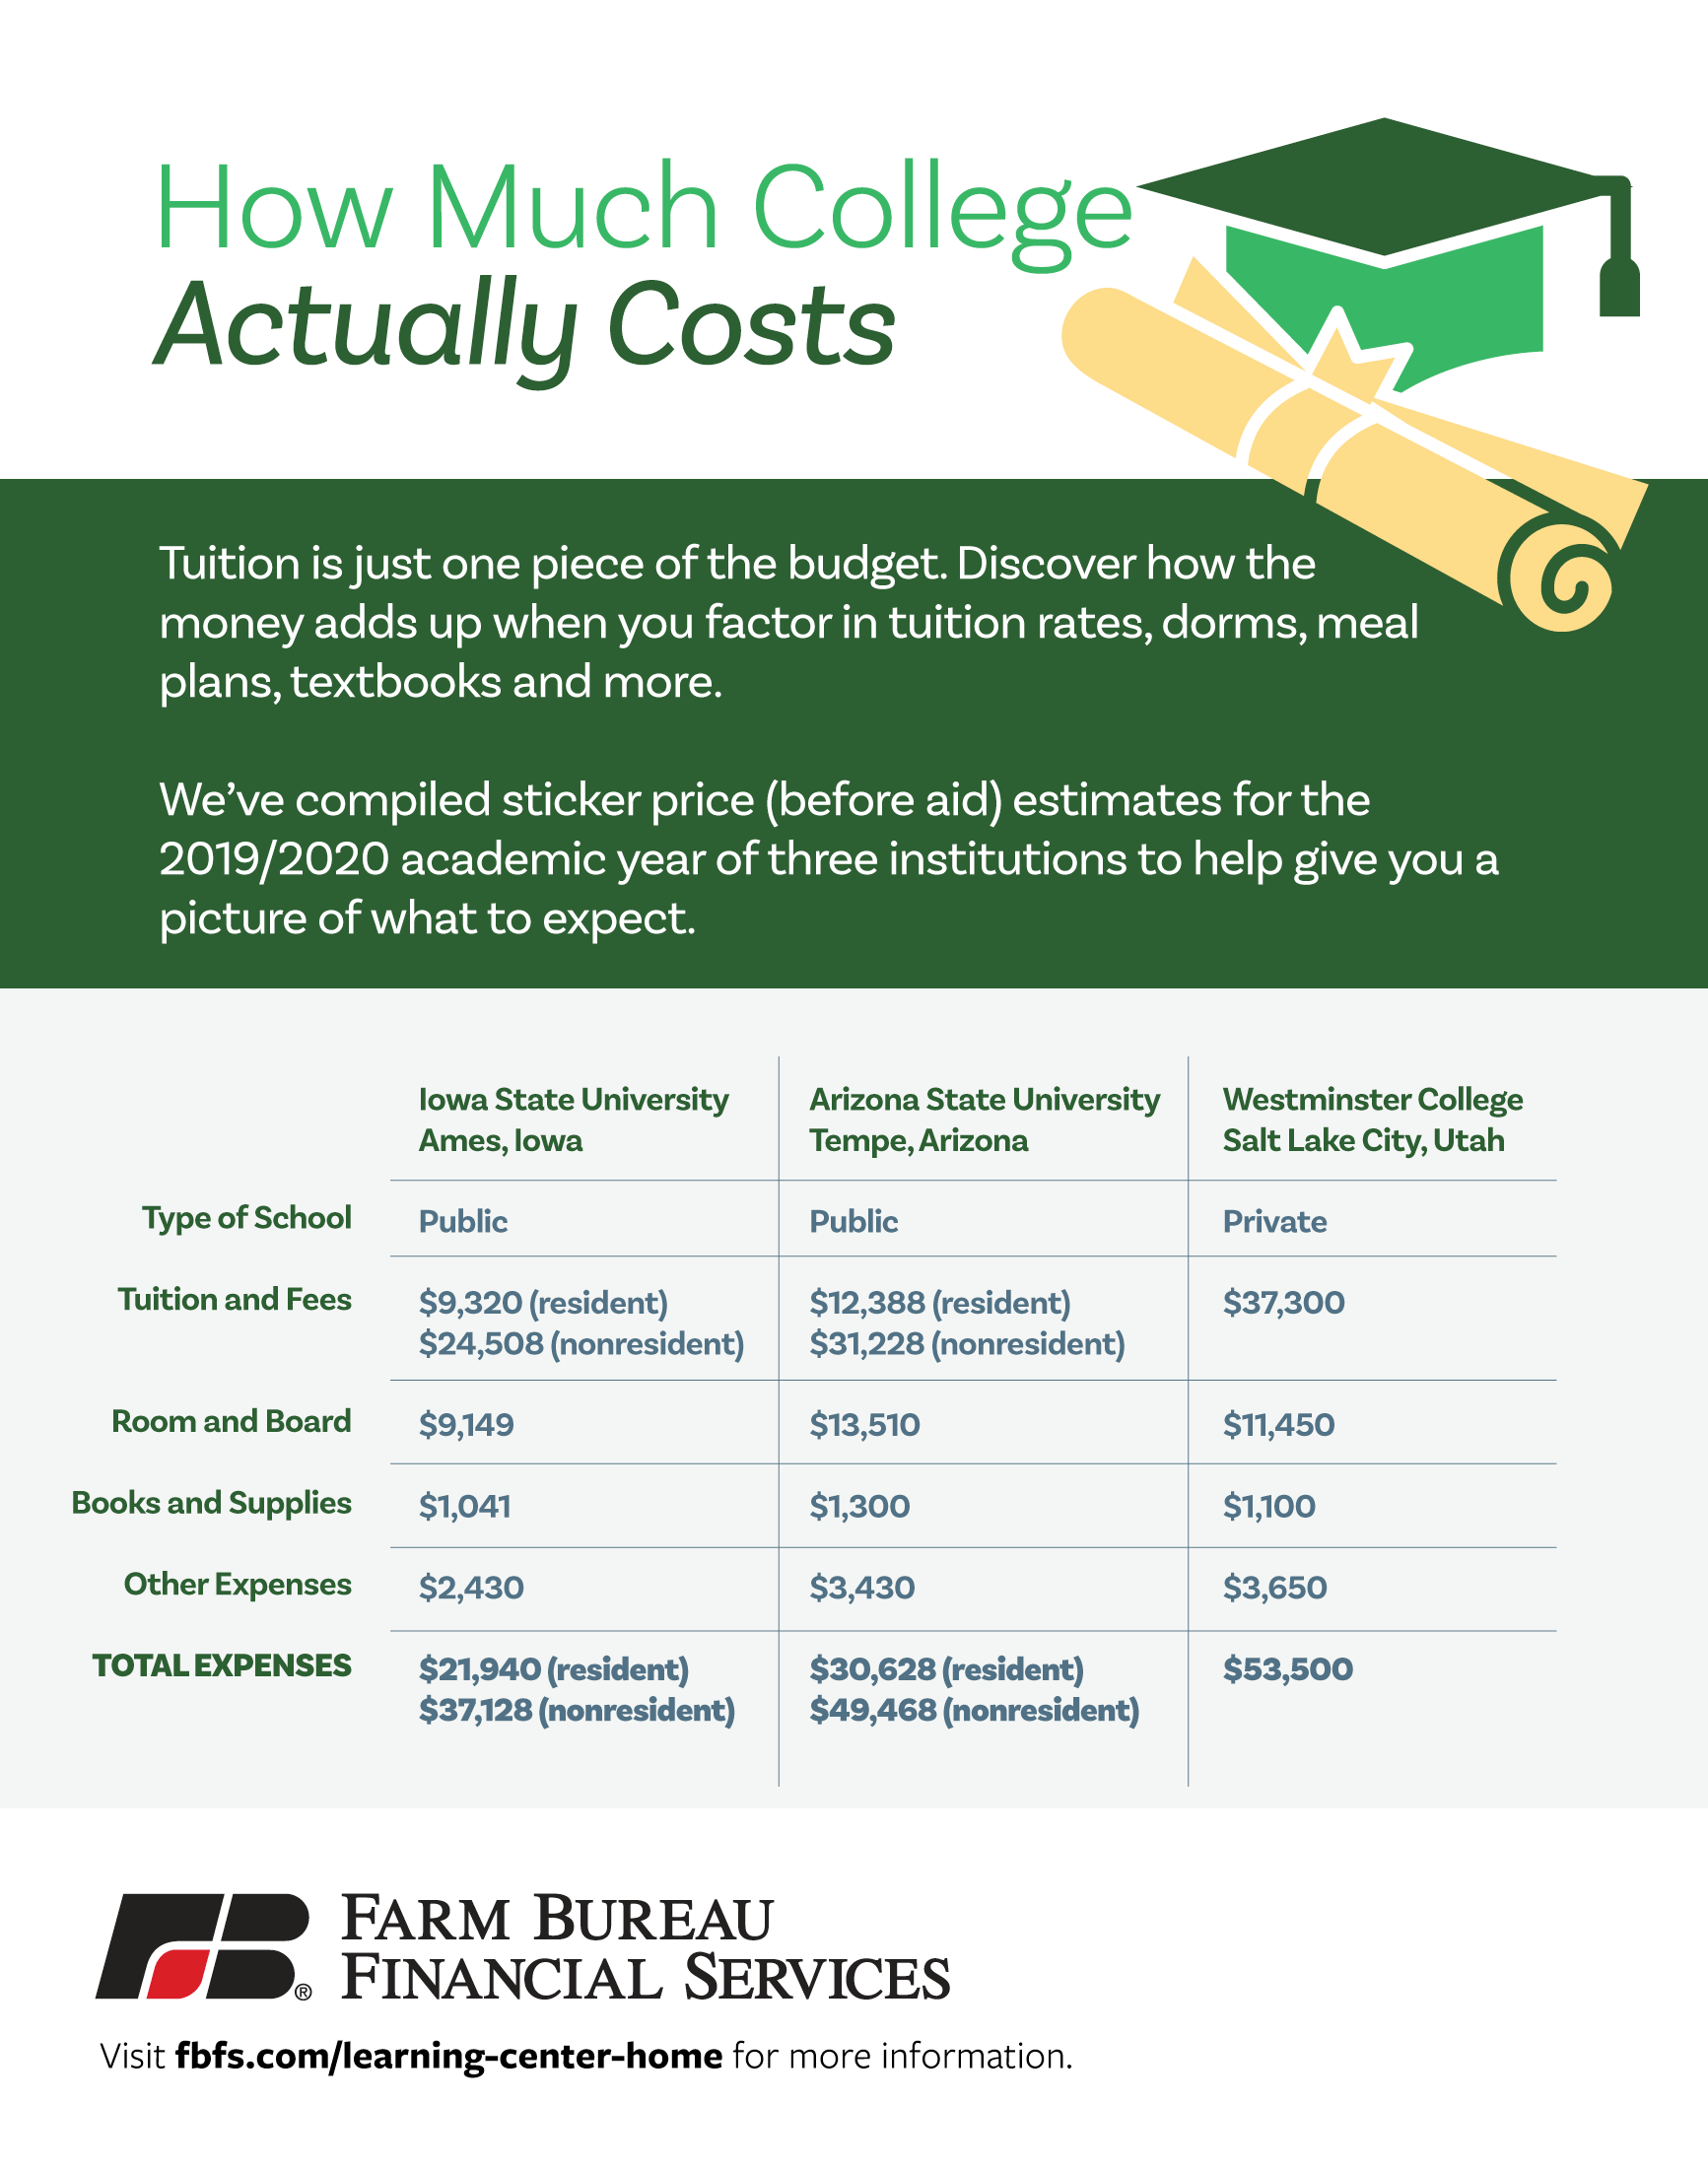 How Much Does College Cost (A Realistic Estimate) Infographic